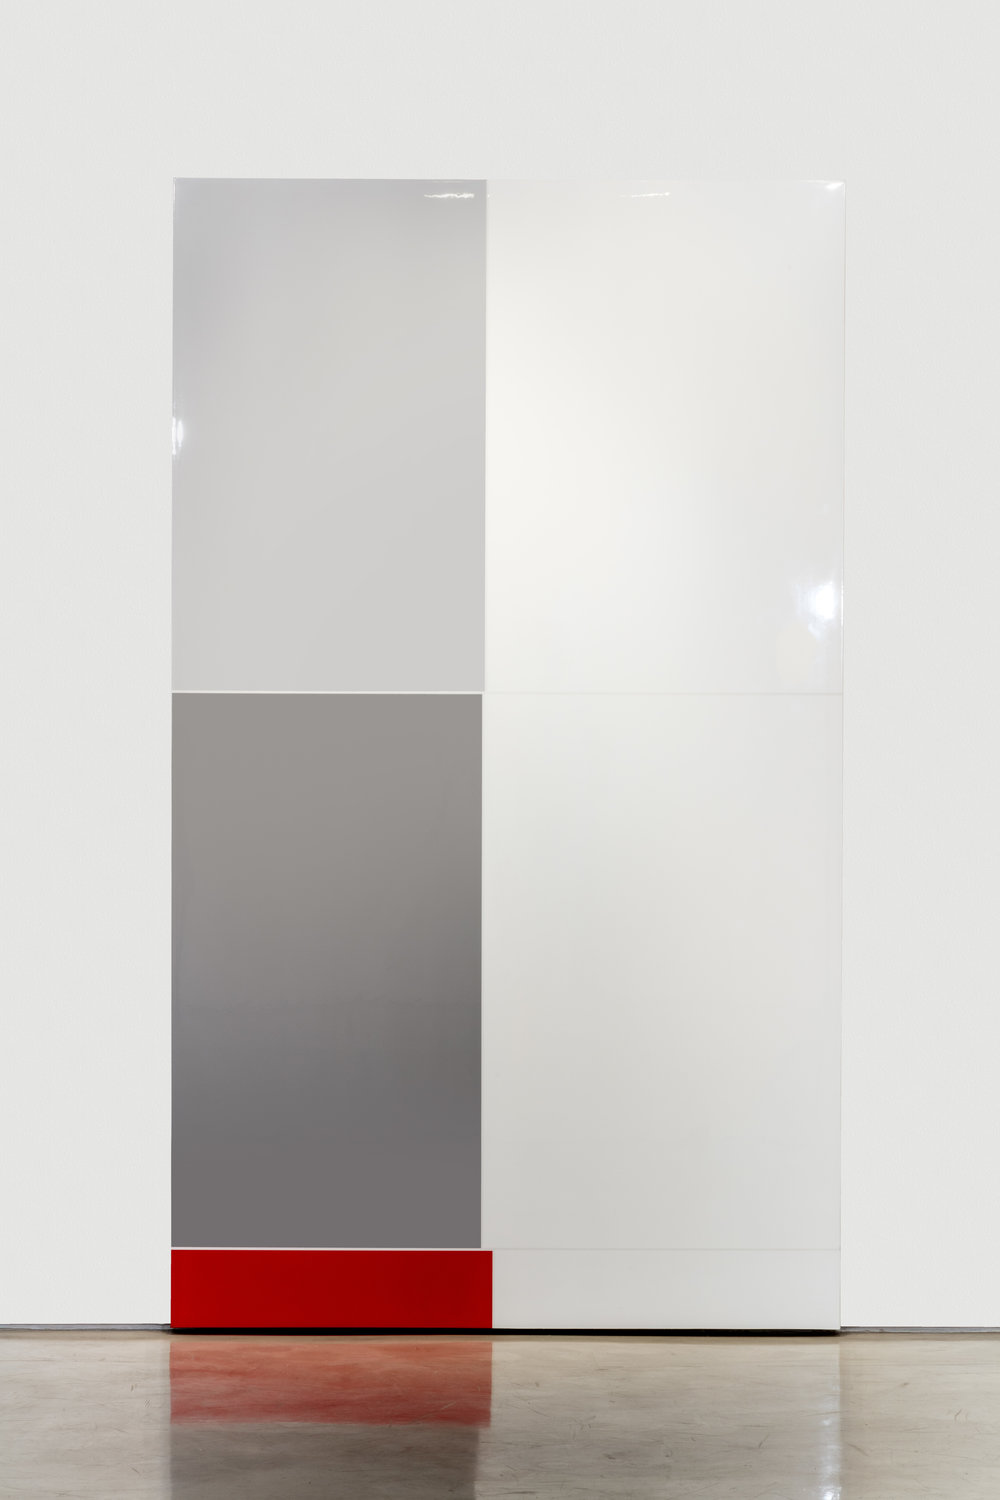 As. 32, Astonished, (Feelings and Emotions Chart), Polished urethane on canvas, 96 X 56 inches, 2016